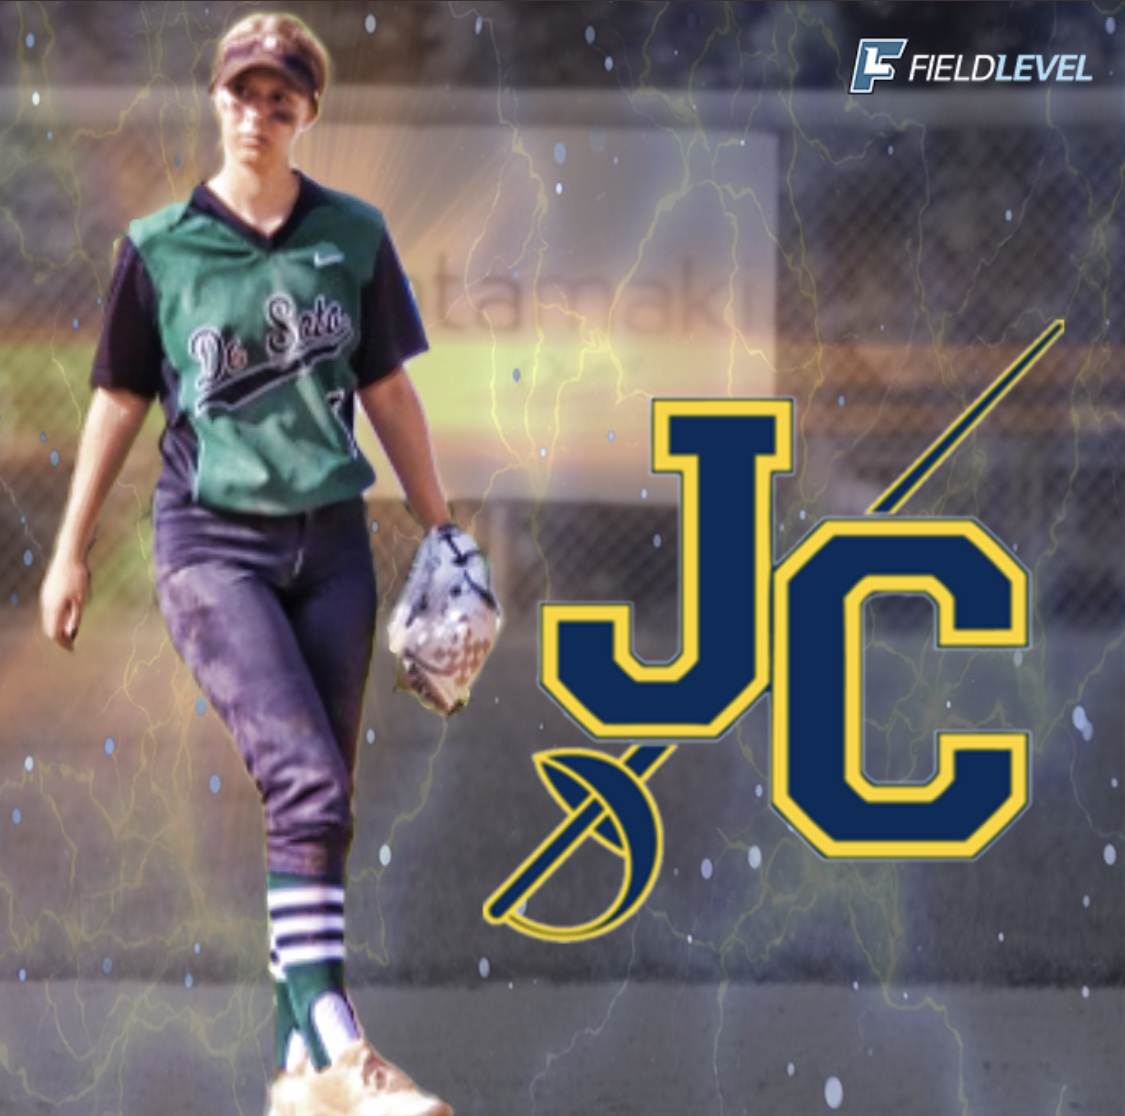 Senior Jordan Diehl commits to Johnson County Community College to pursue her academic and athletic softball career.